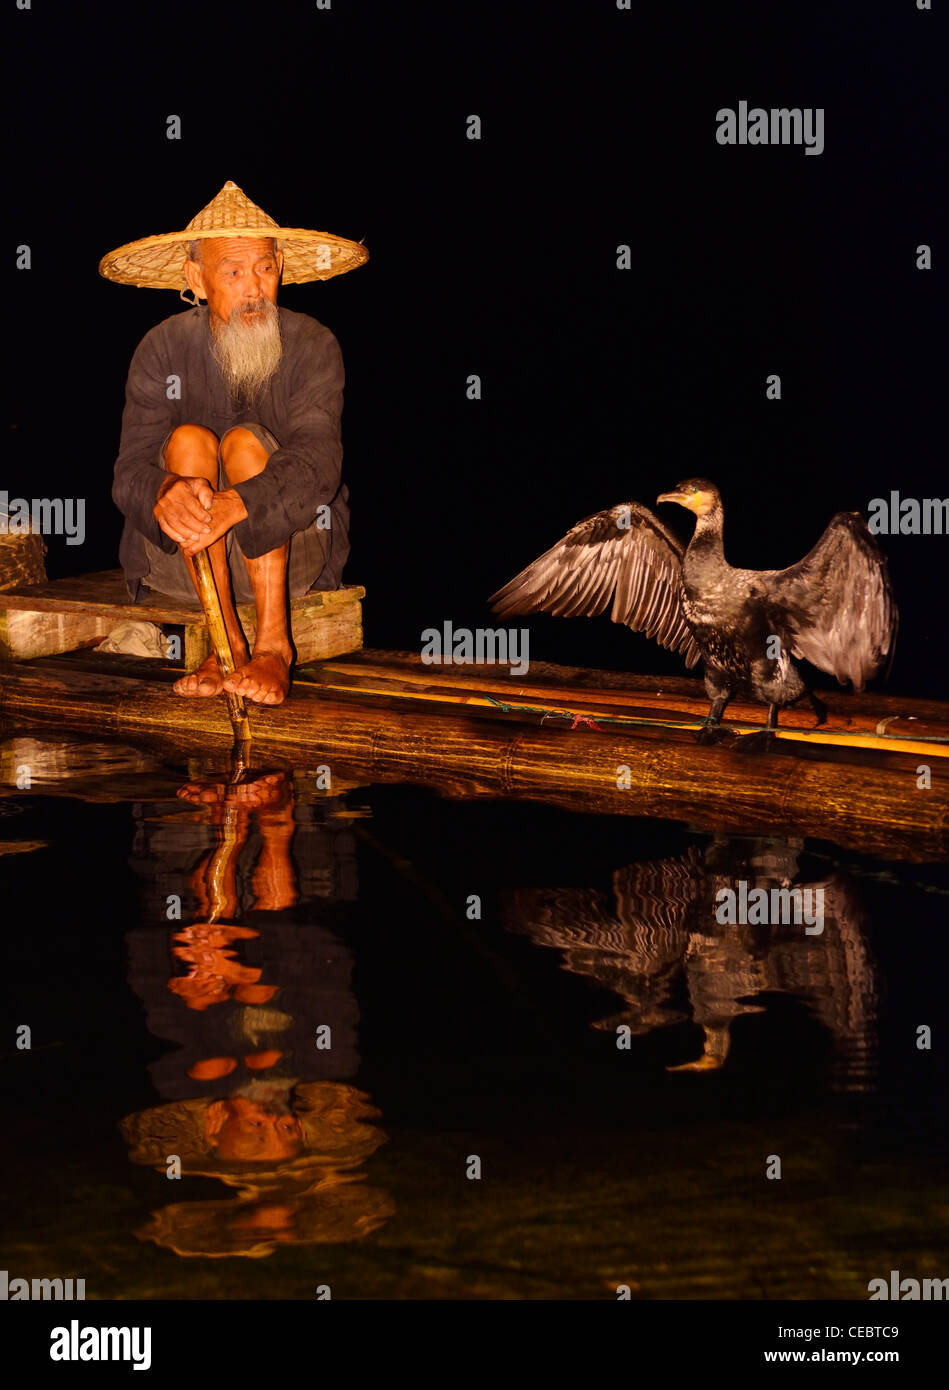 Cormorant fisherman and bird with spread wings reflected in the Li river at night from a bamboo raft Xingpingzhen Yangshuo, Guilin, Guangxi China Stock Photo